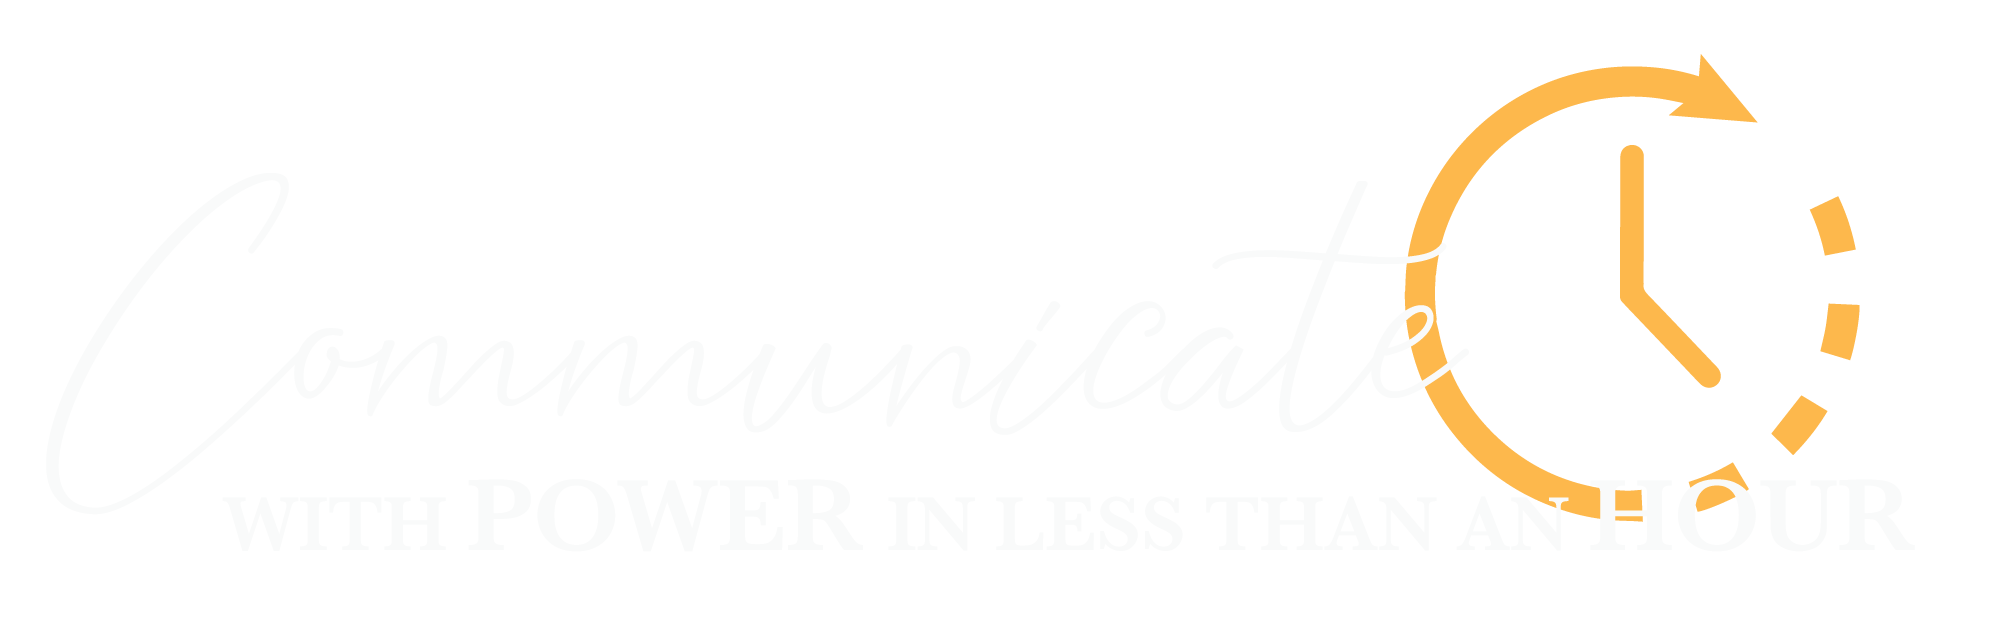 CommunicatewithPower_logoWHITE